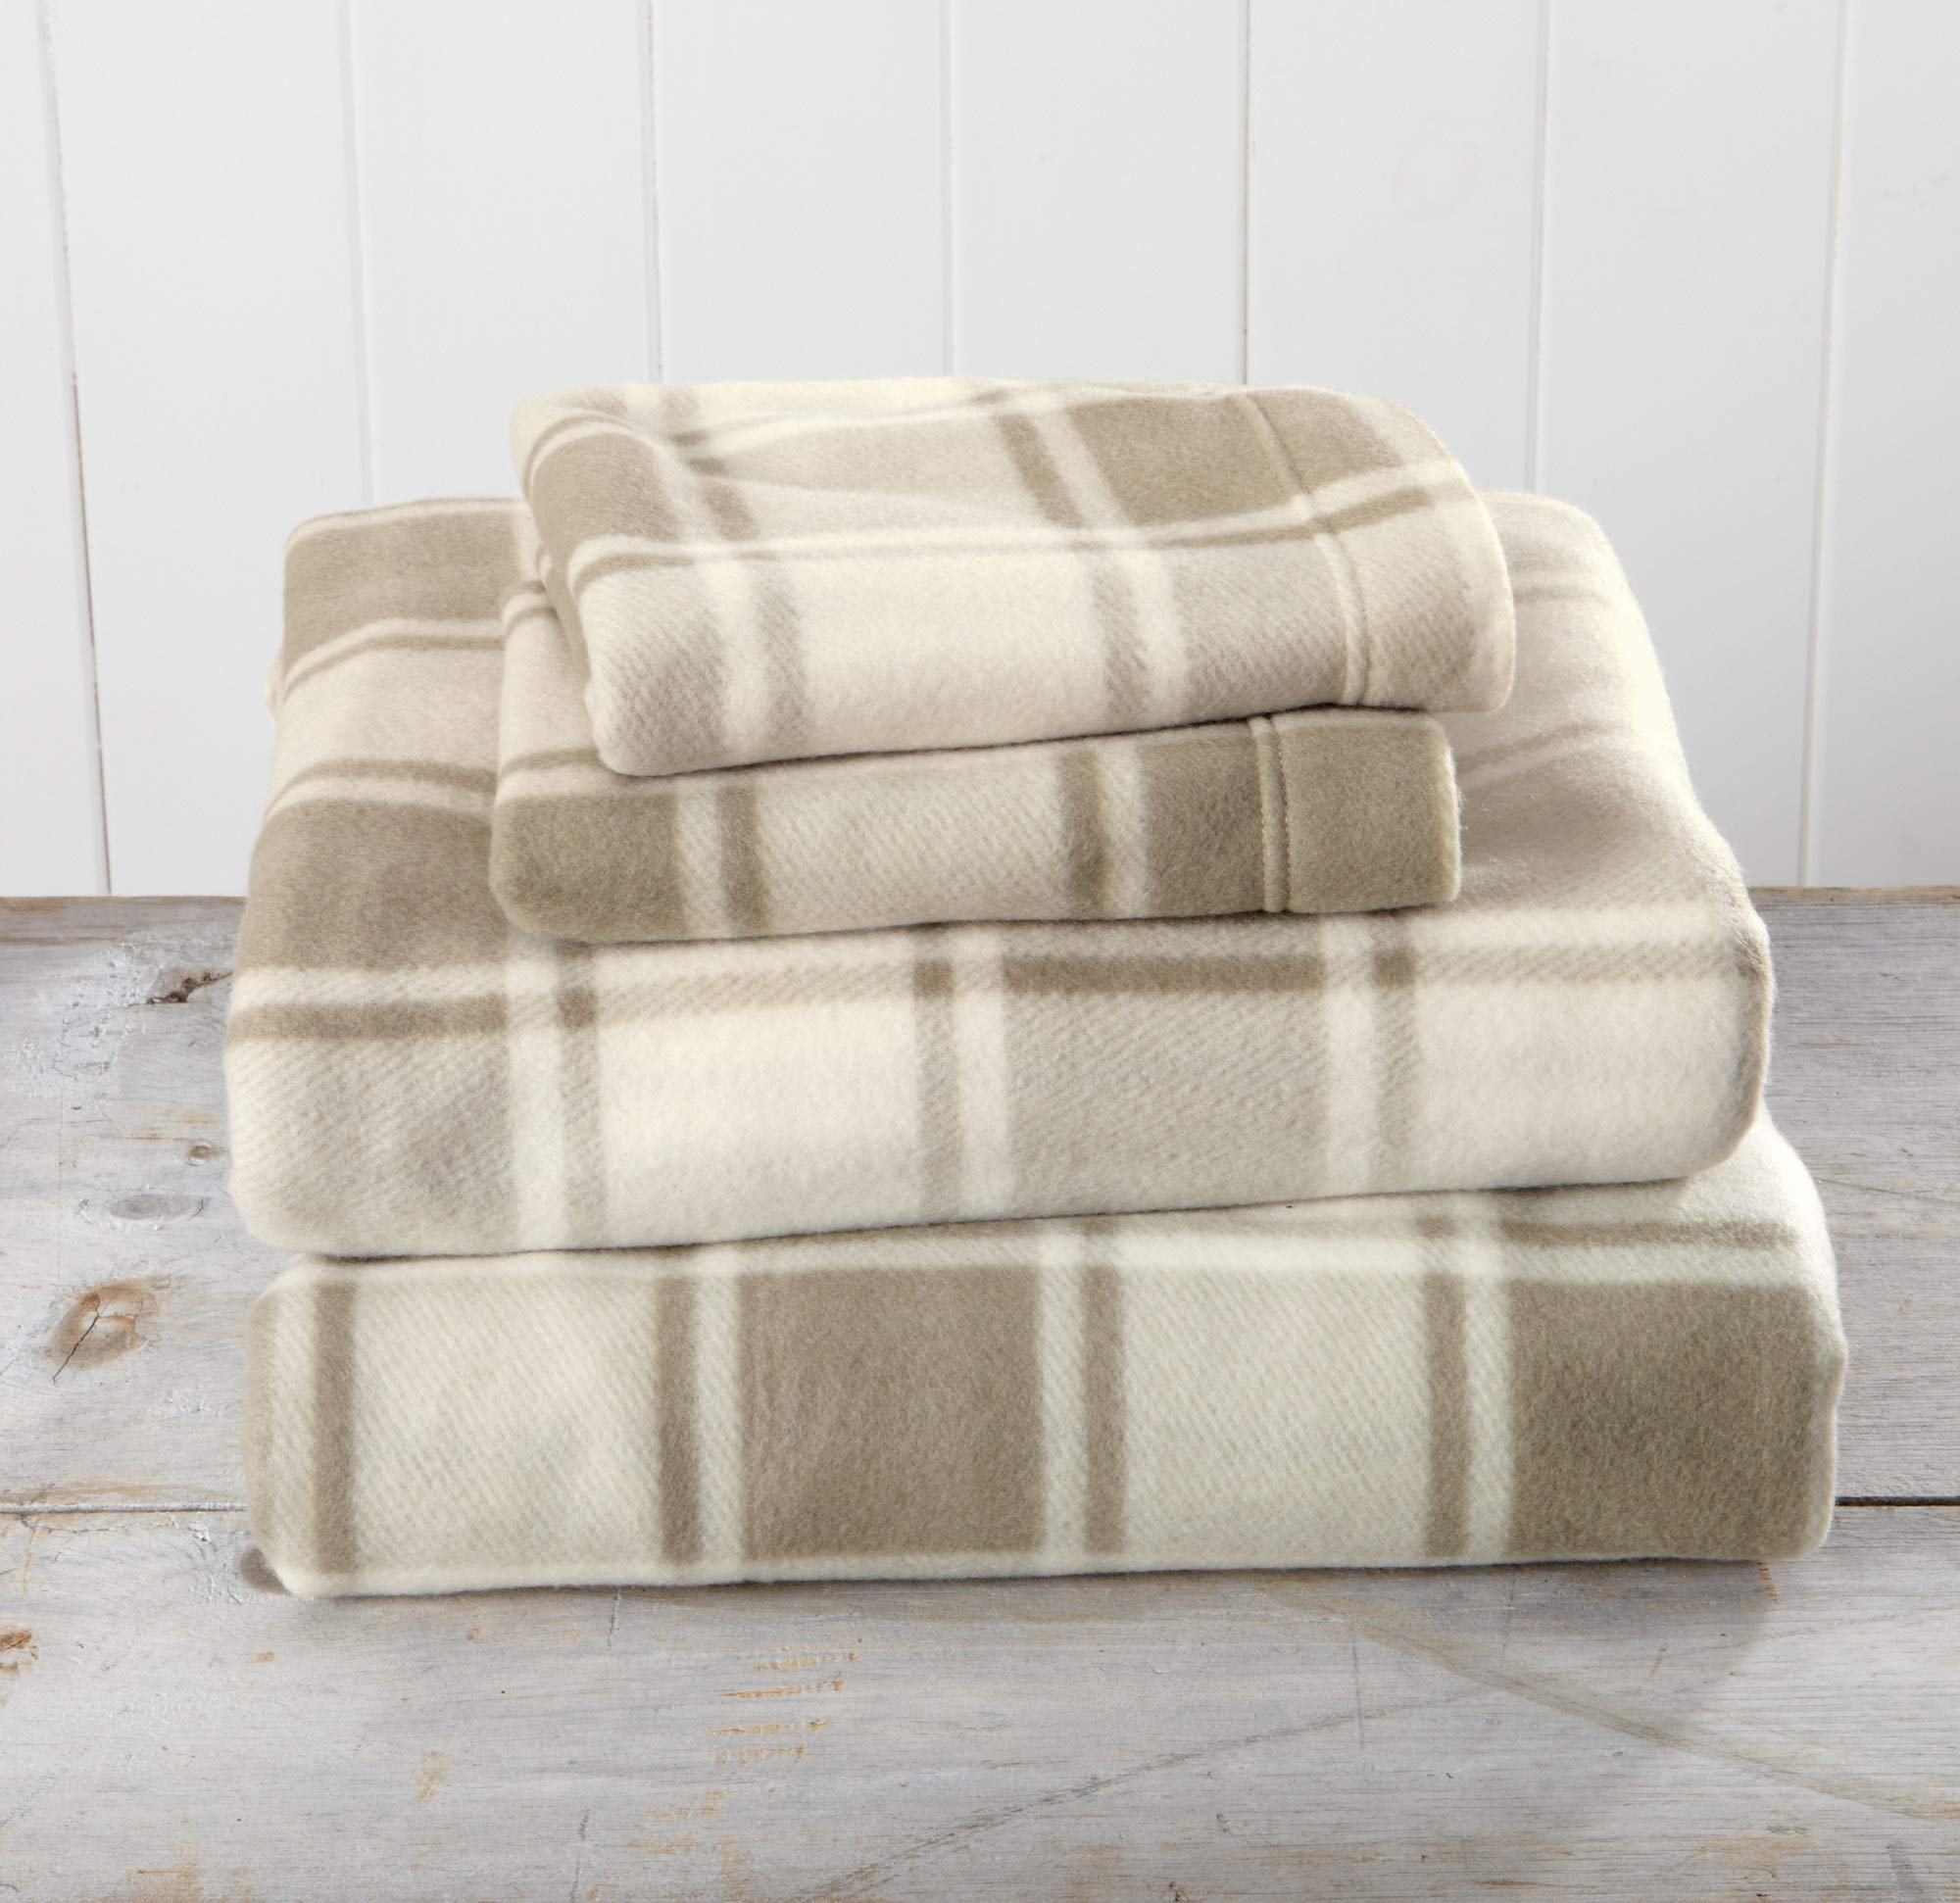 Great Bay Home Super Soft Extra Plush Plaid Polar Fleece Sheet Set. Cozy, Warm, Durable, Smooth, Breathable Winter Sheets with Plaid Pattern. Dara Collection Brand. (Full, Taupe) by Great Bay Home (Image #1)